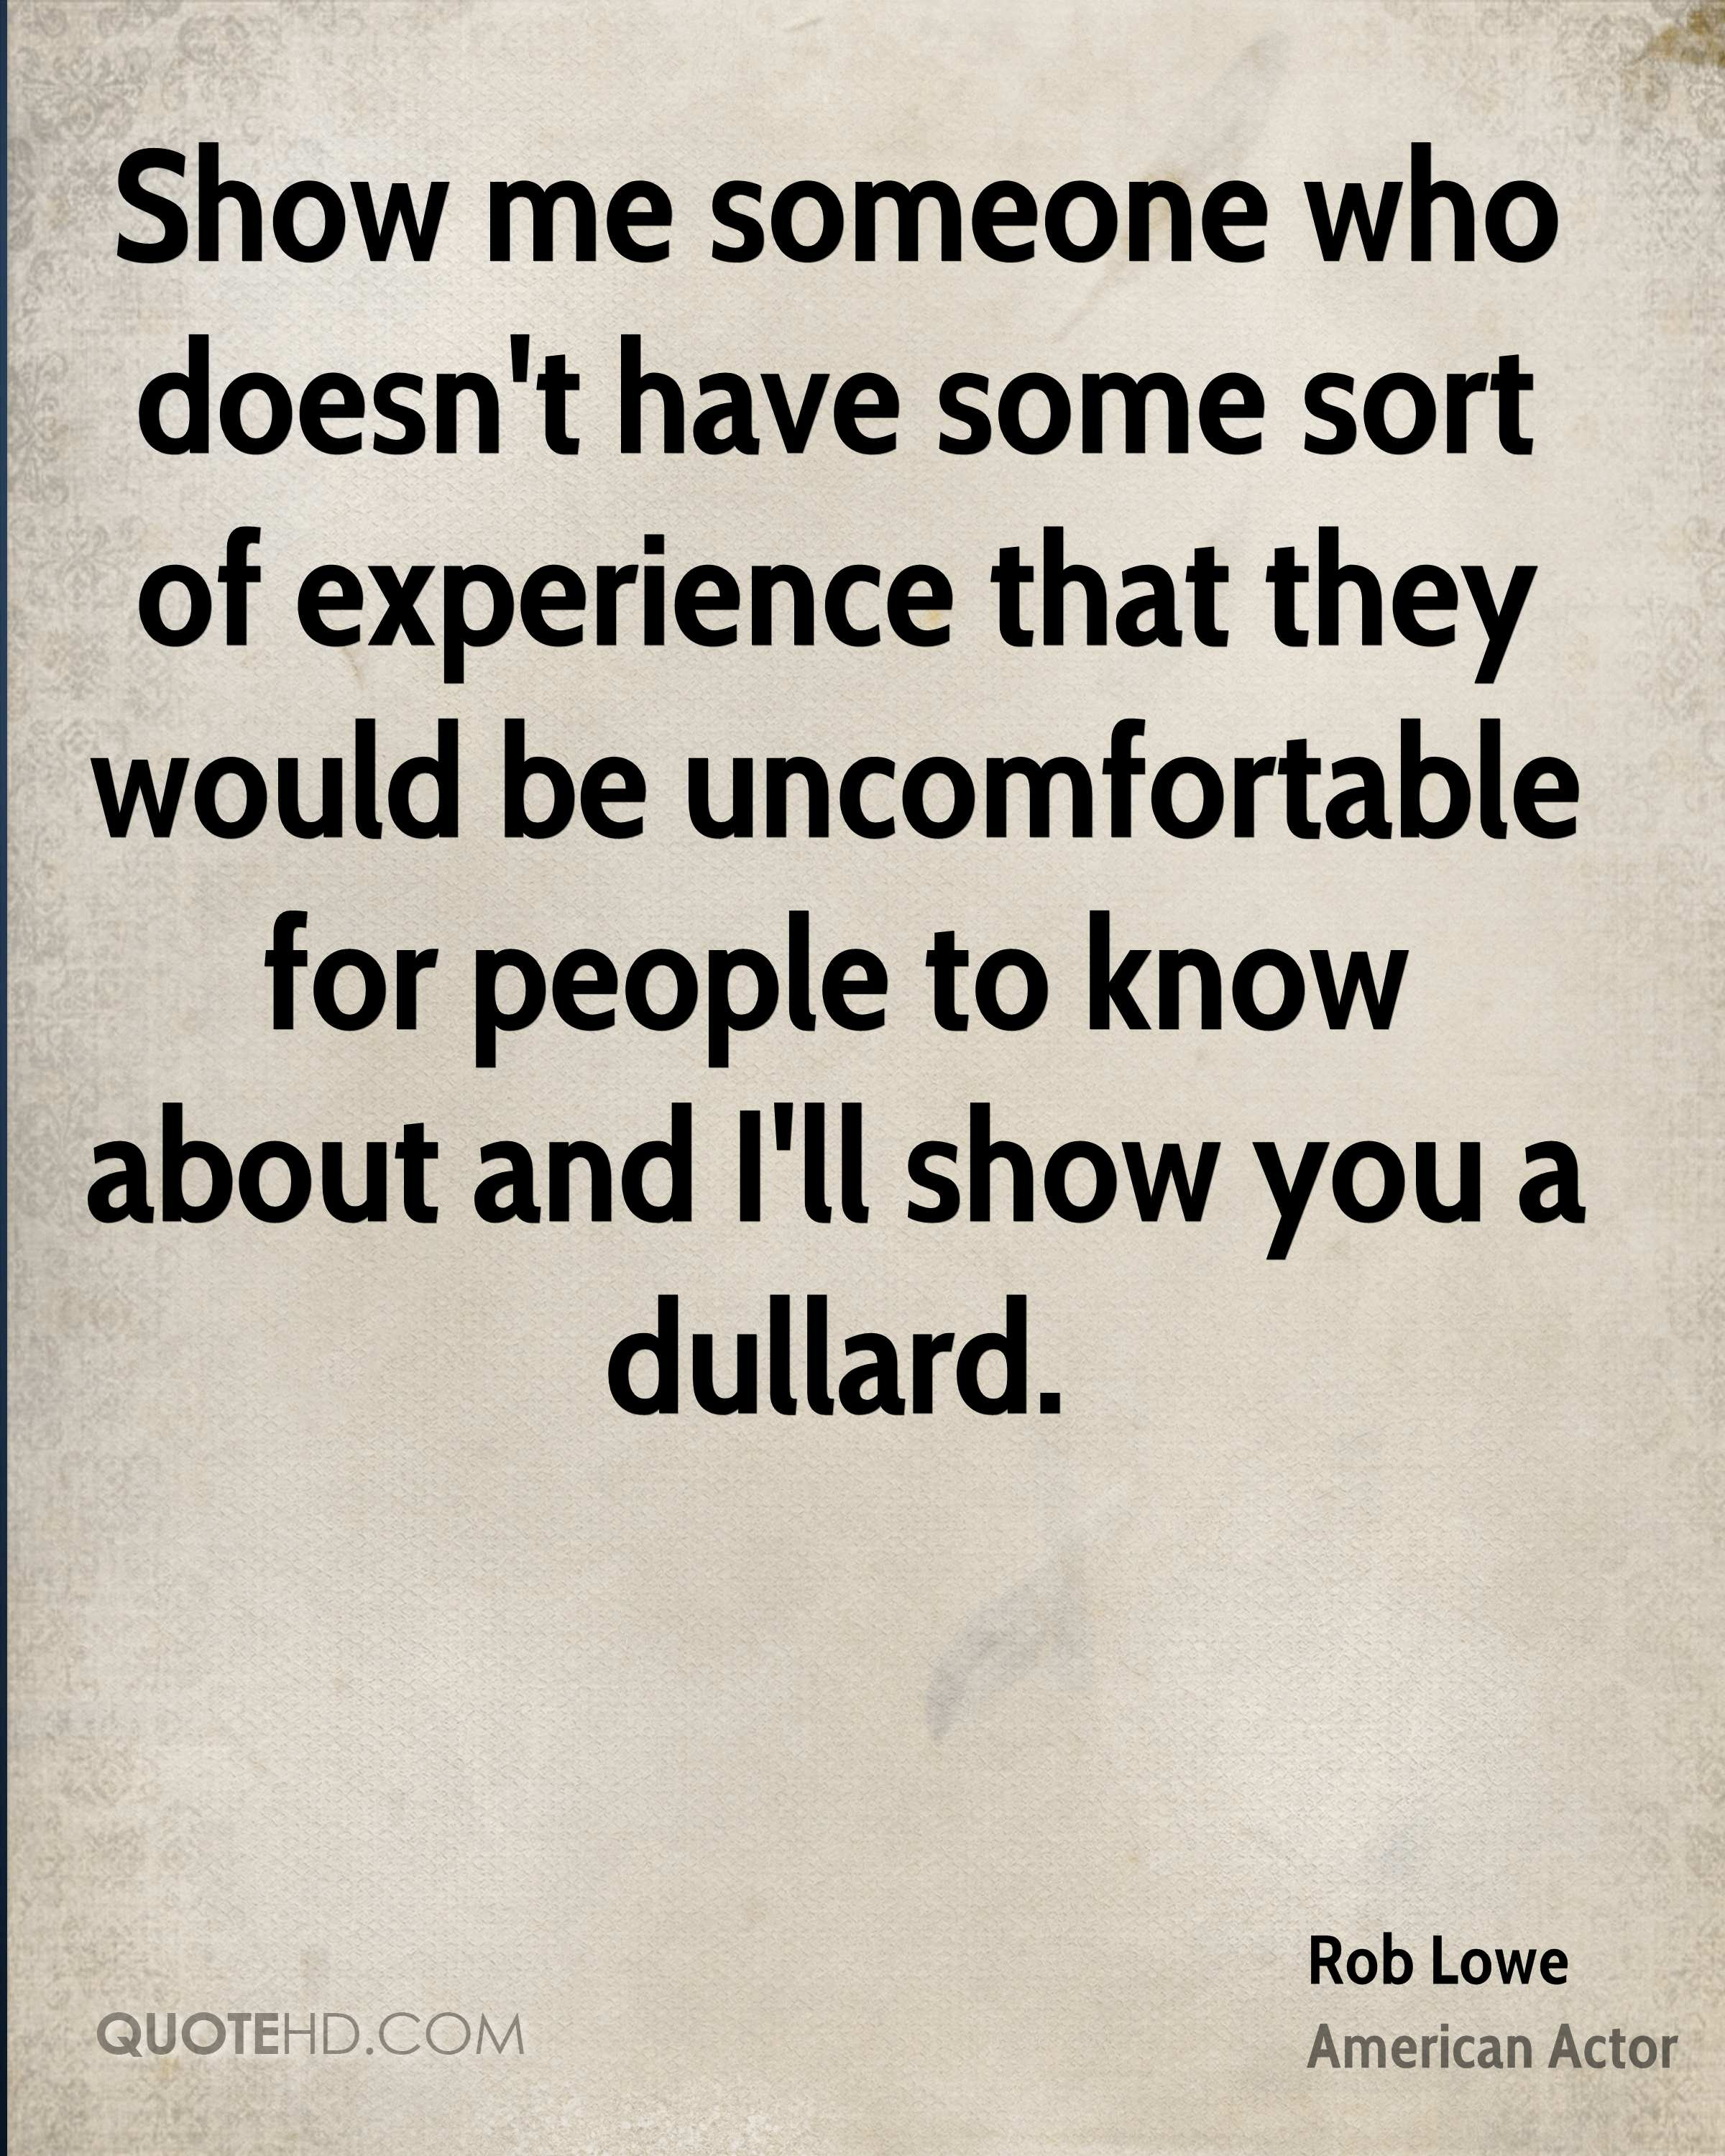 Show me someone who doesn't have some sort of experience that they would be uncomfortable for people to know about and I'll show you a dullard.